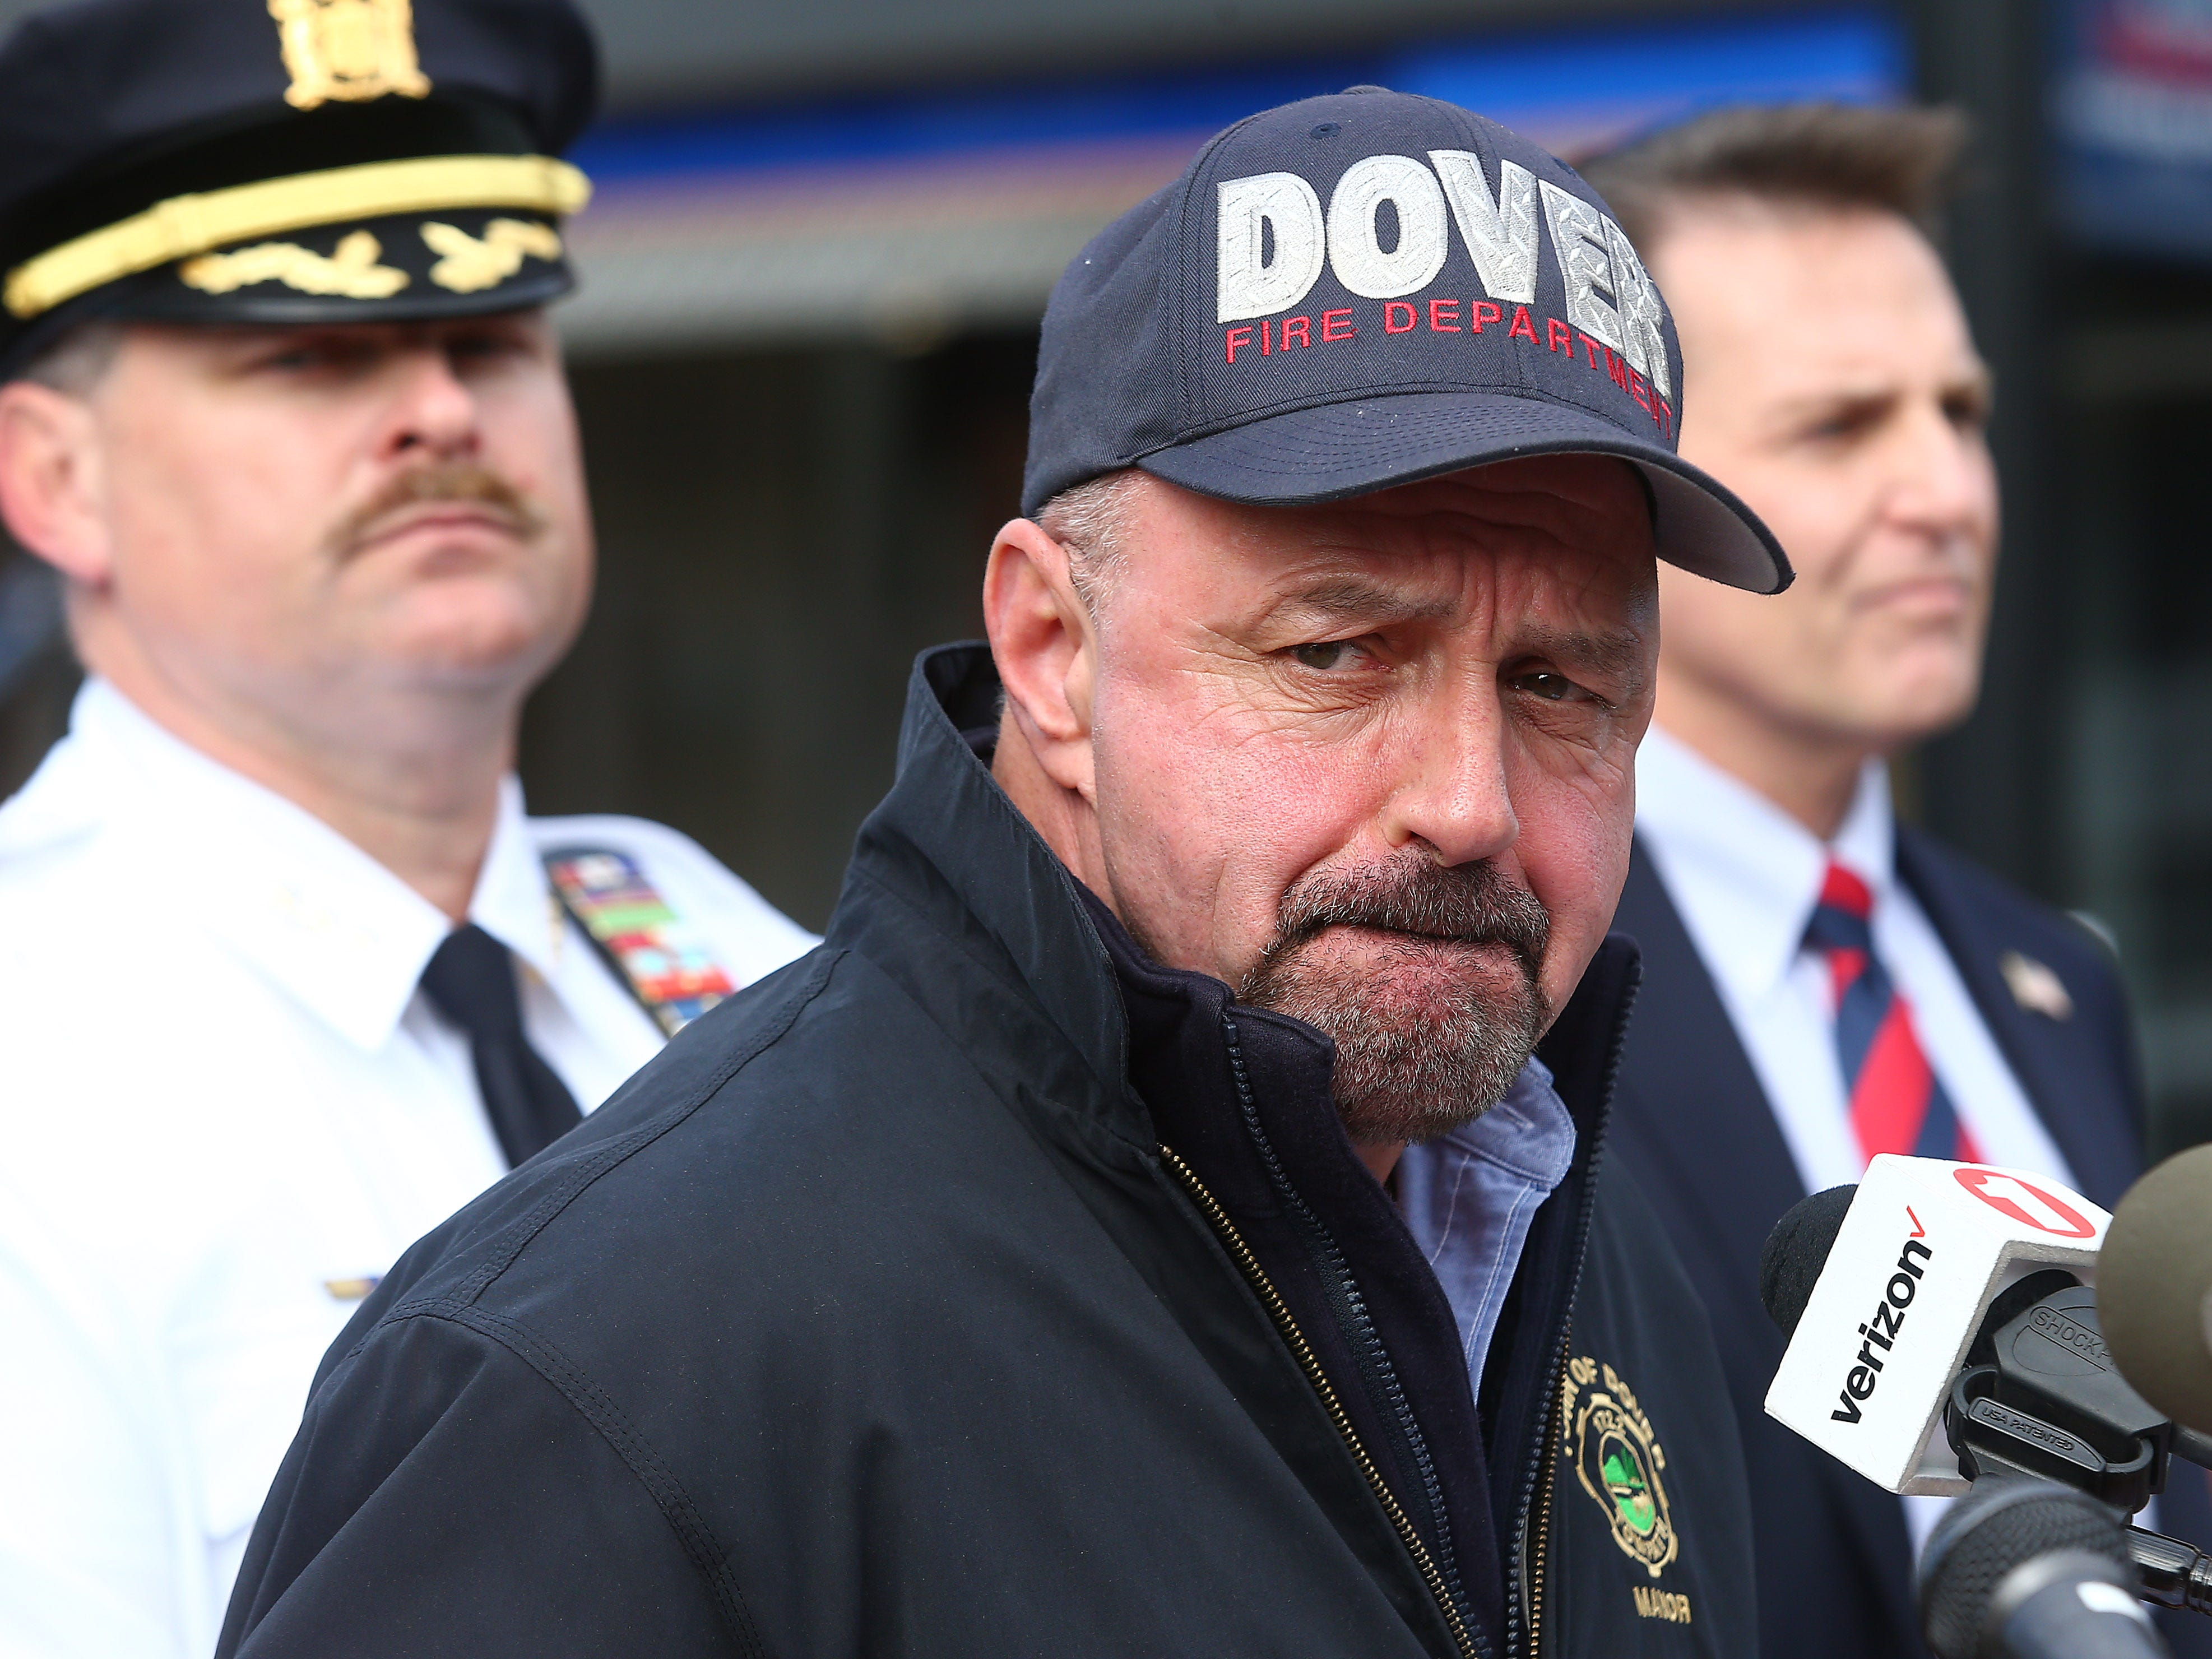 Dover Mayor James P. Dodd speaks to the media the morning after a devastating fire on North Warren Street in Dover that collapsed multiple businesses in a fast-moving, seven-alarm blaze that officials say started in the basement of Barry's restaurant. The fire then spread throughout the building and to others nearby that contained businesses and apartments Displacing about 100 people from their homes. October 23, 2018, Dover, NJ